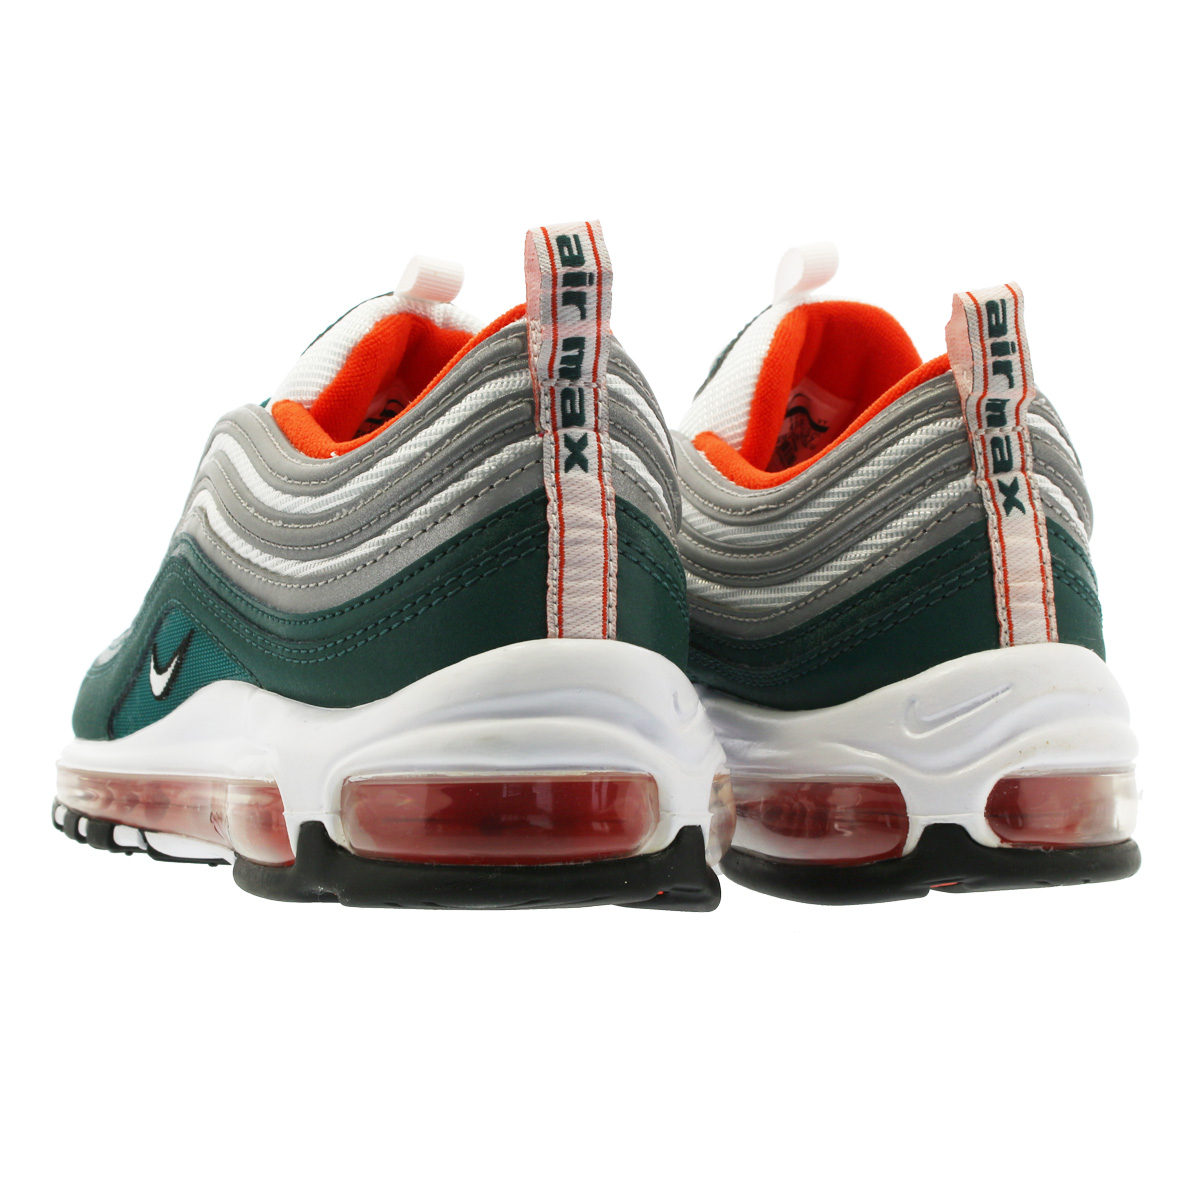 new style 65a11 12eff NIKE AIR MAX 97 Kie Ney AMAX 97 RAINFOREST WHITE TEAM ORANGE BLACK  921,826-300